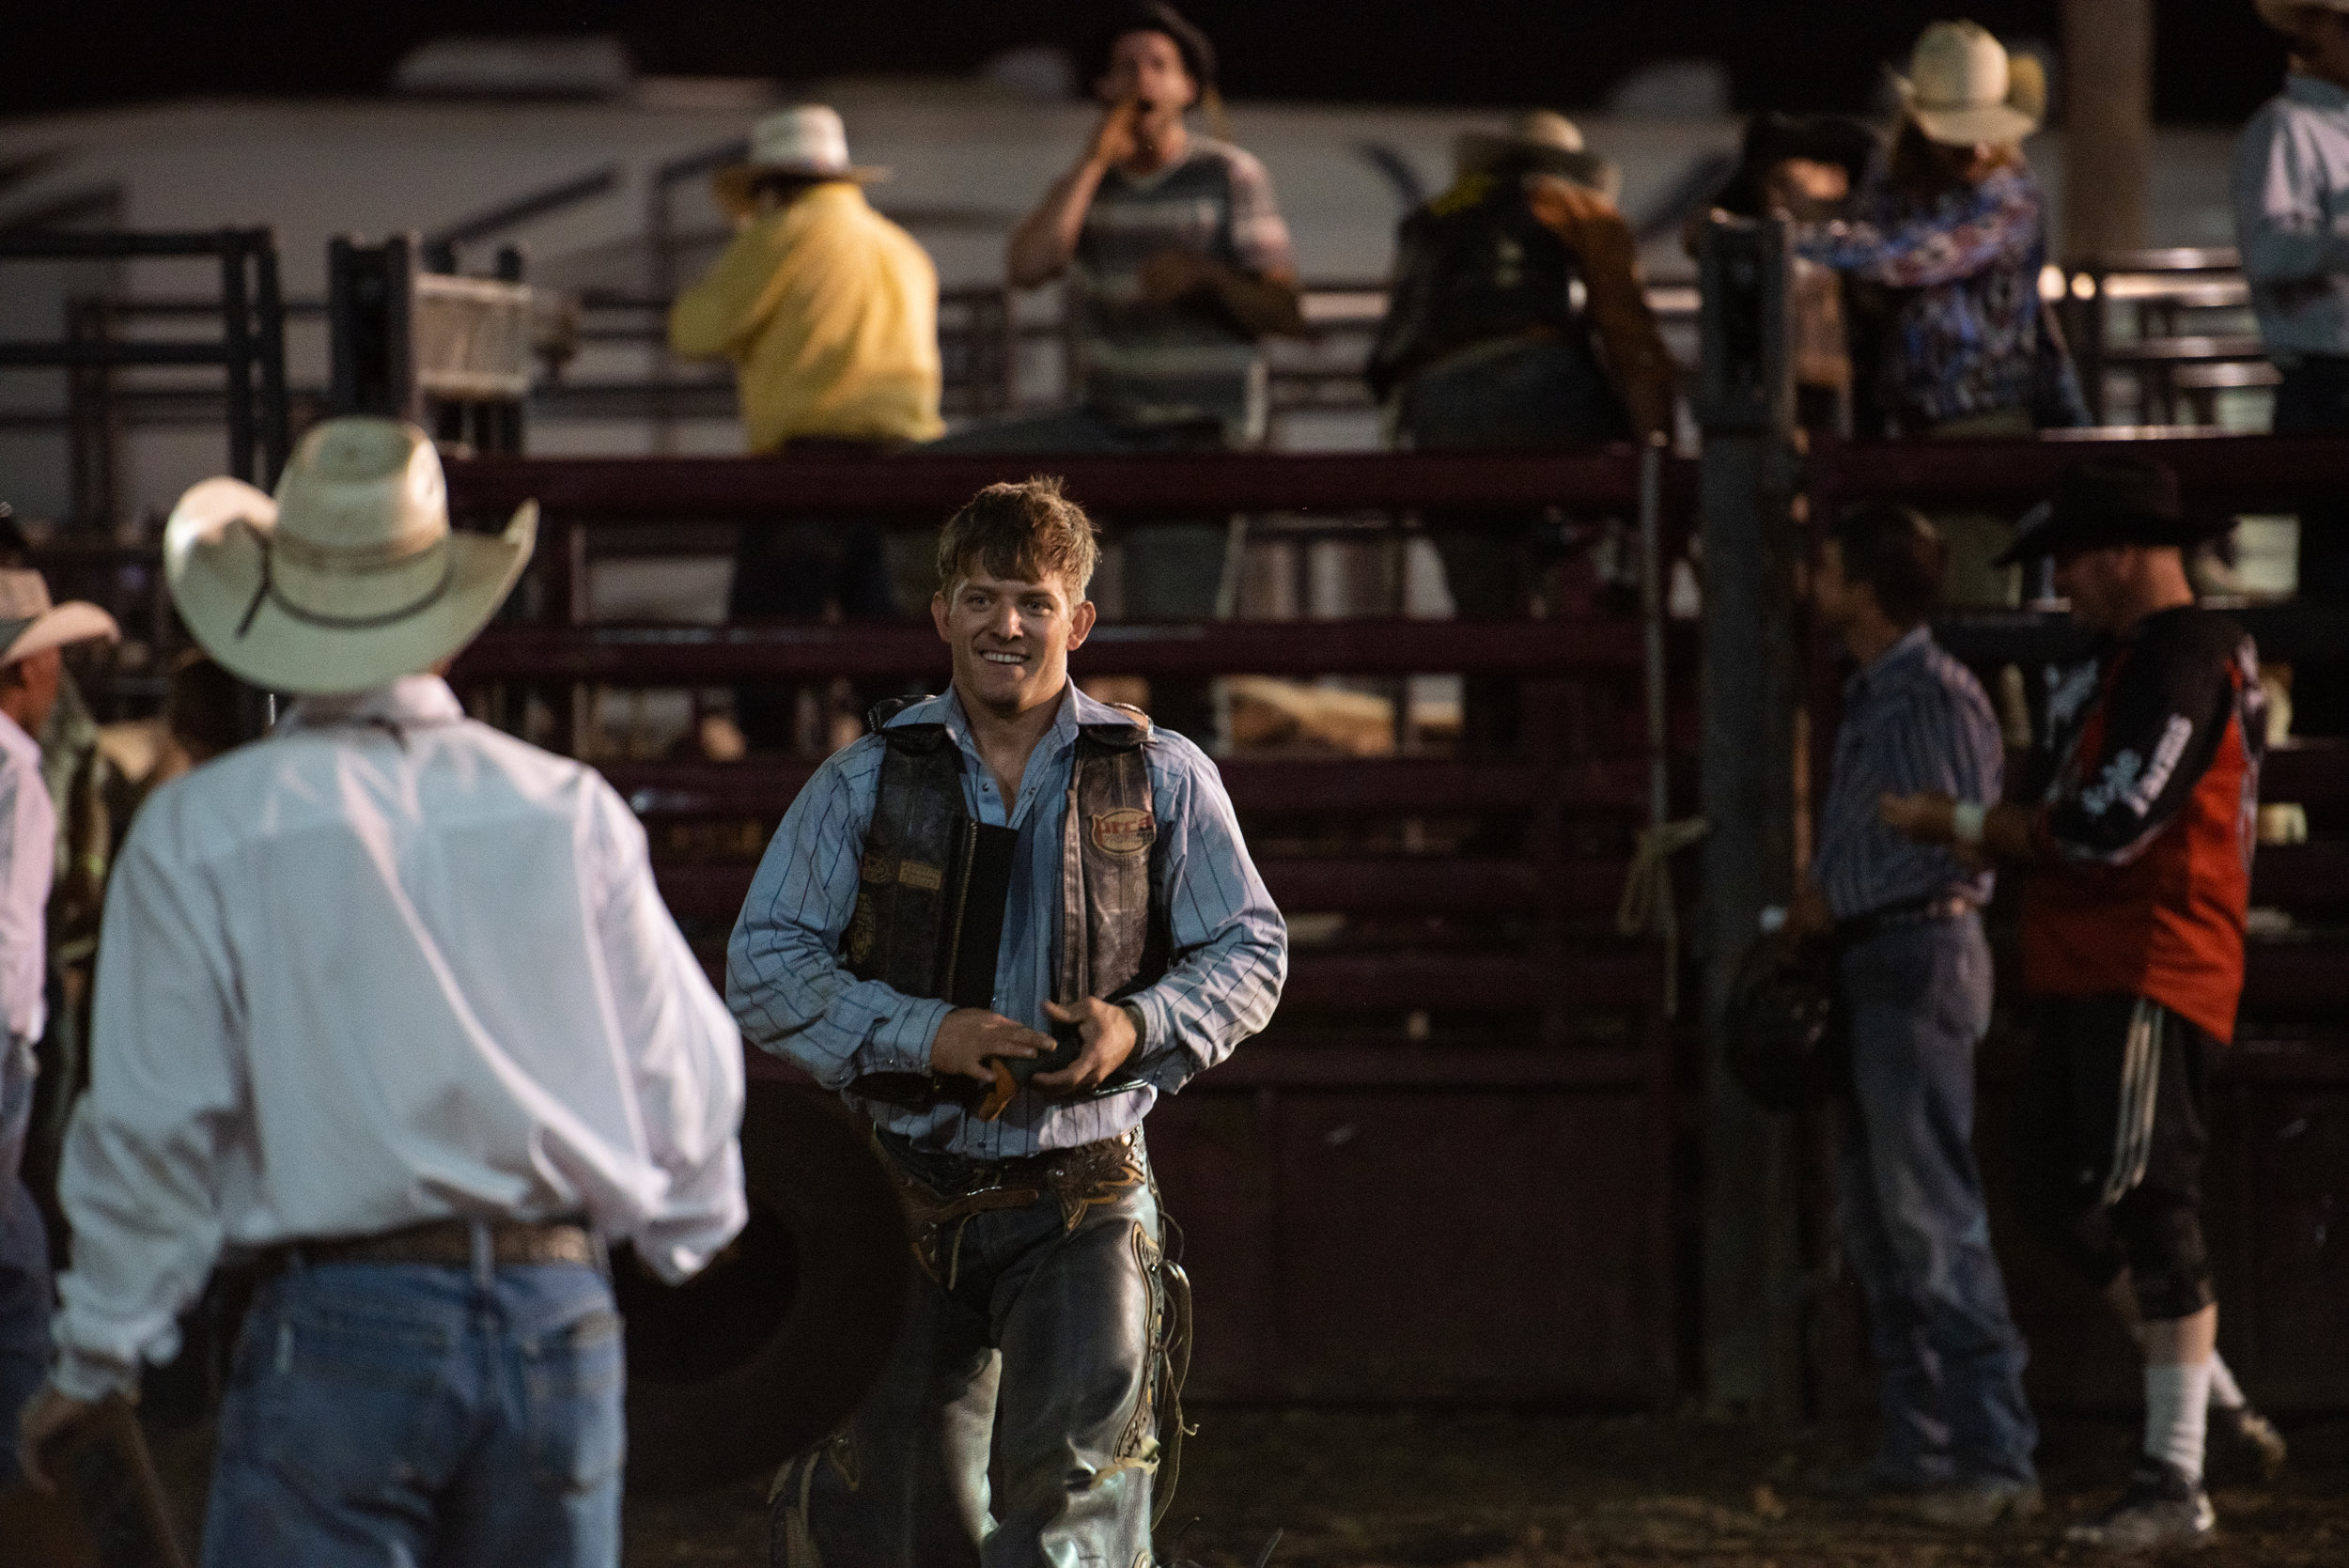 Jake Weber is all smiles after his winning ride on the first leg of the Tuff Hedeman Midwest Swing in Woodstock, Illinois on Aug 2. Tuff Hedeman and the bull riding boys head to Belvidere Friday night for the second stop of the five city tour. The Midwest Swing Series is sponsored by WickedRank.com  Photo by Tricia Carzoli